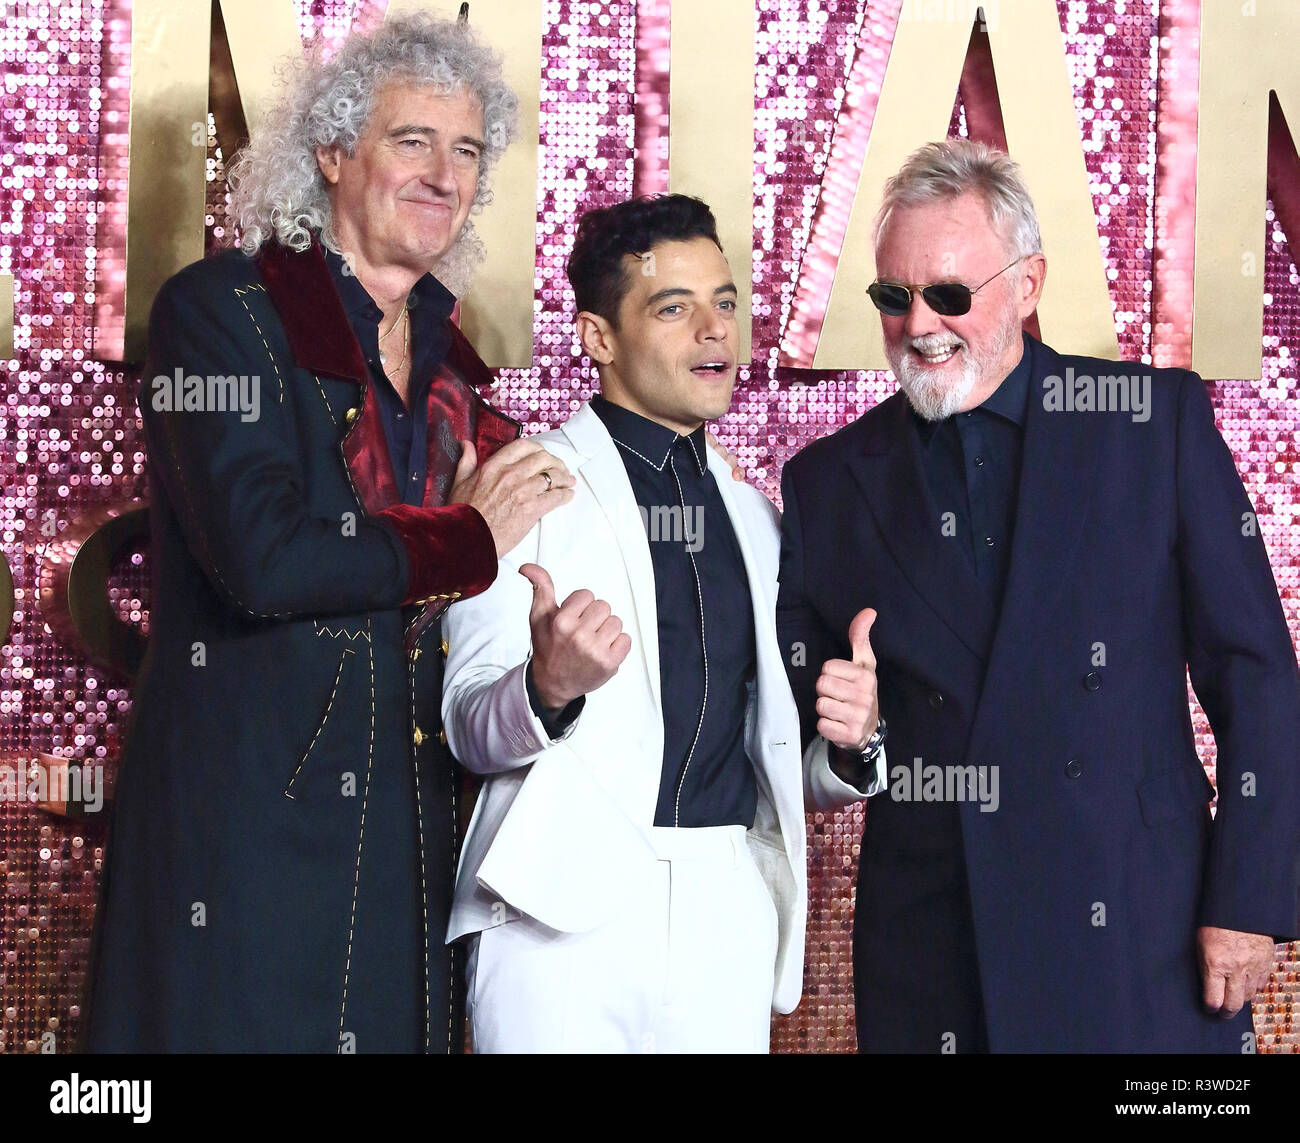 Bohemian Rhapsody UK Premiere at the SSE Arena Wembley, London  Featuring: Brian May, Rami Malek, Roger Taylor Where: London, United Kingdom When: 23 Oct 2018 Credit: WENN.com Stock Photo